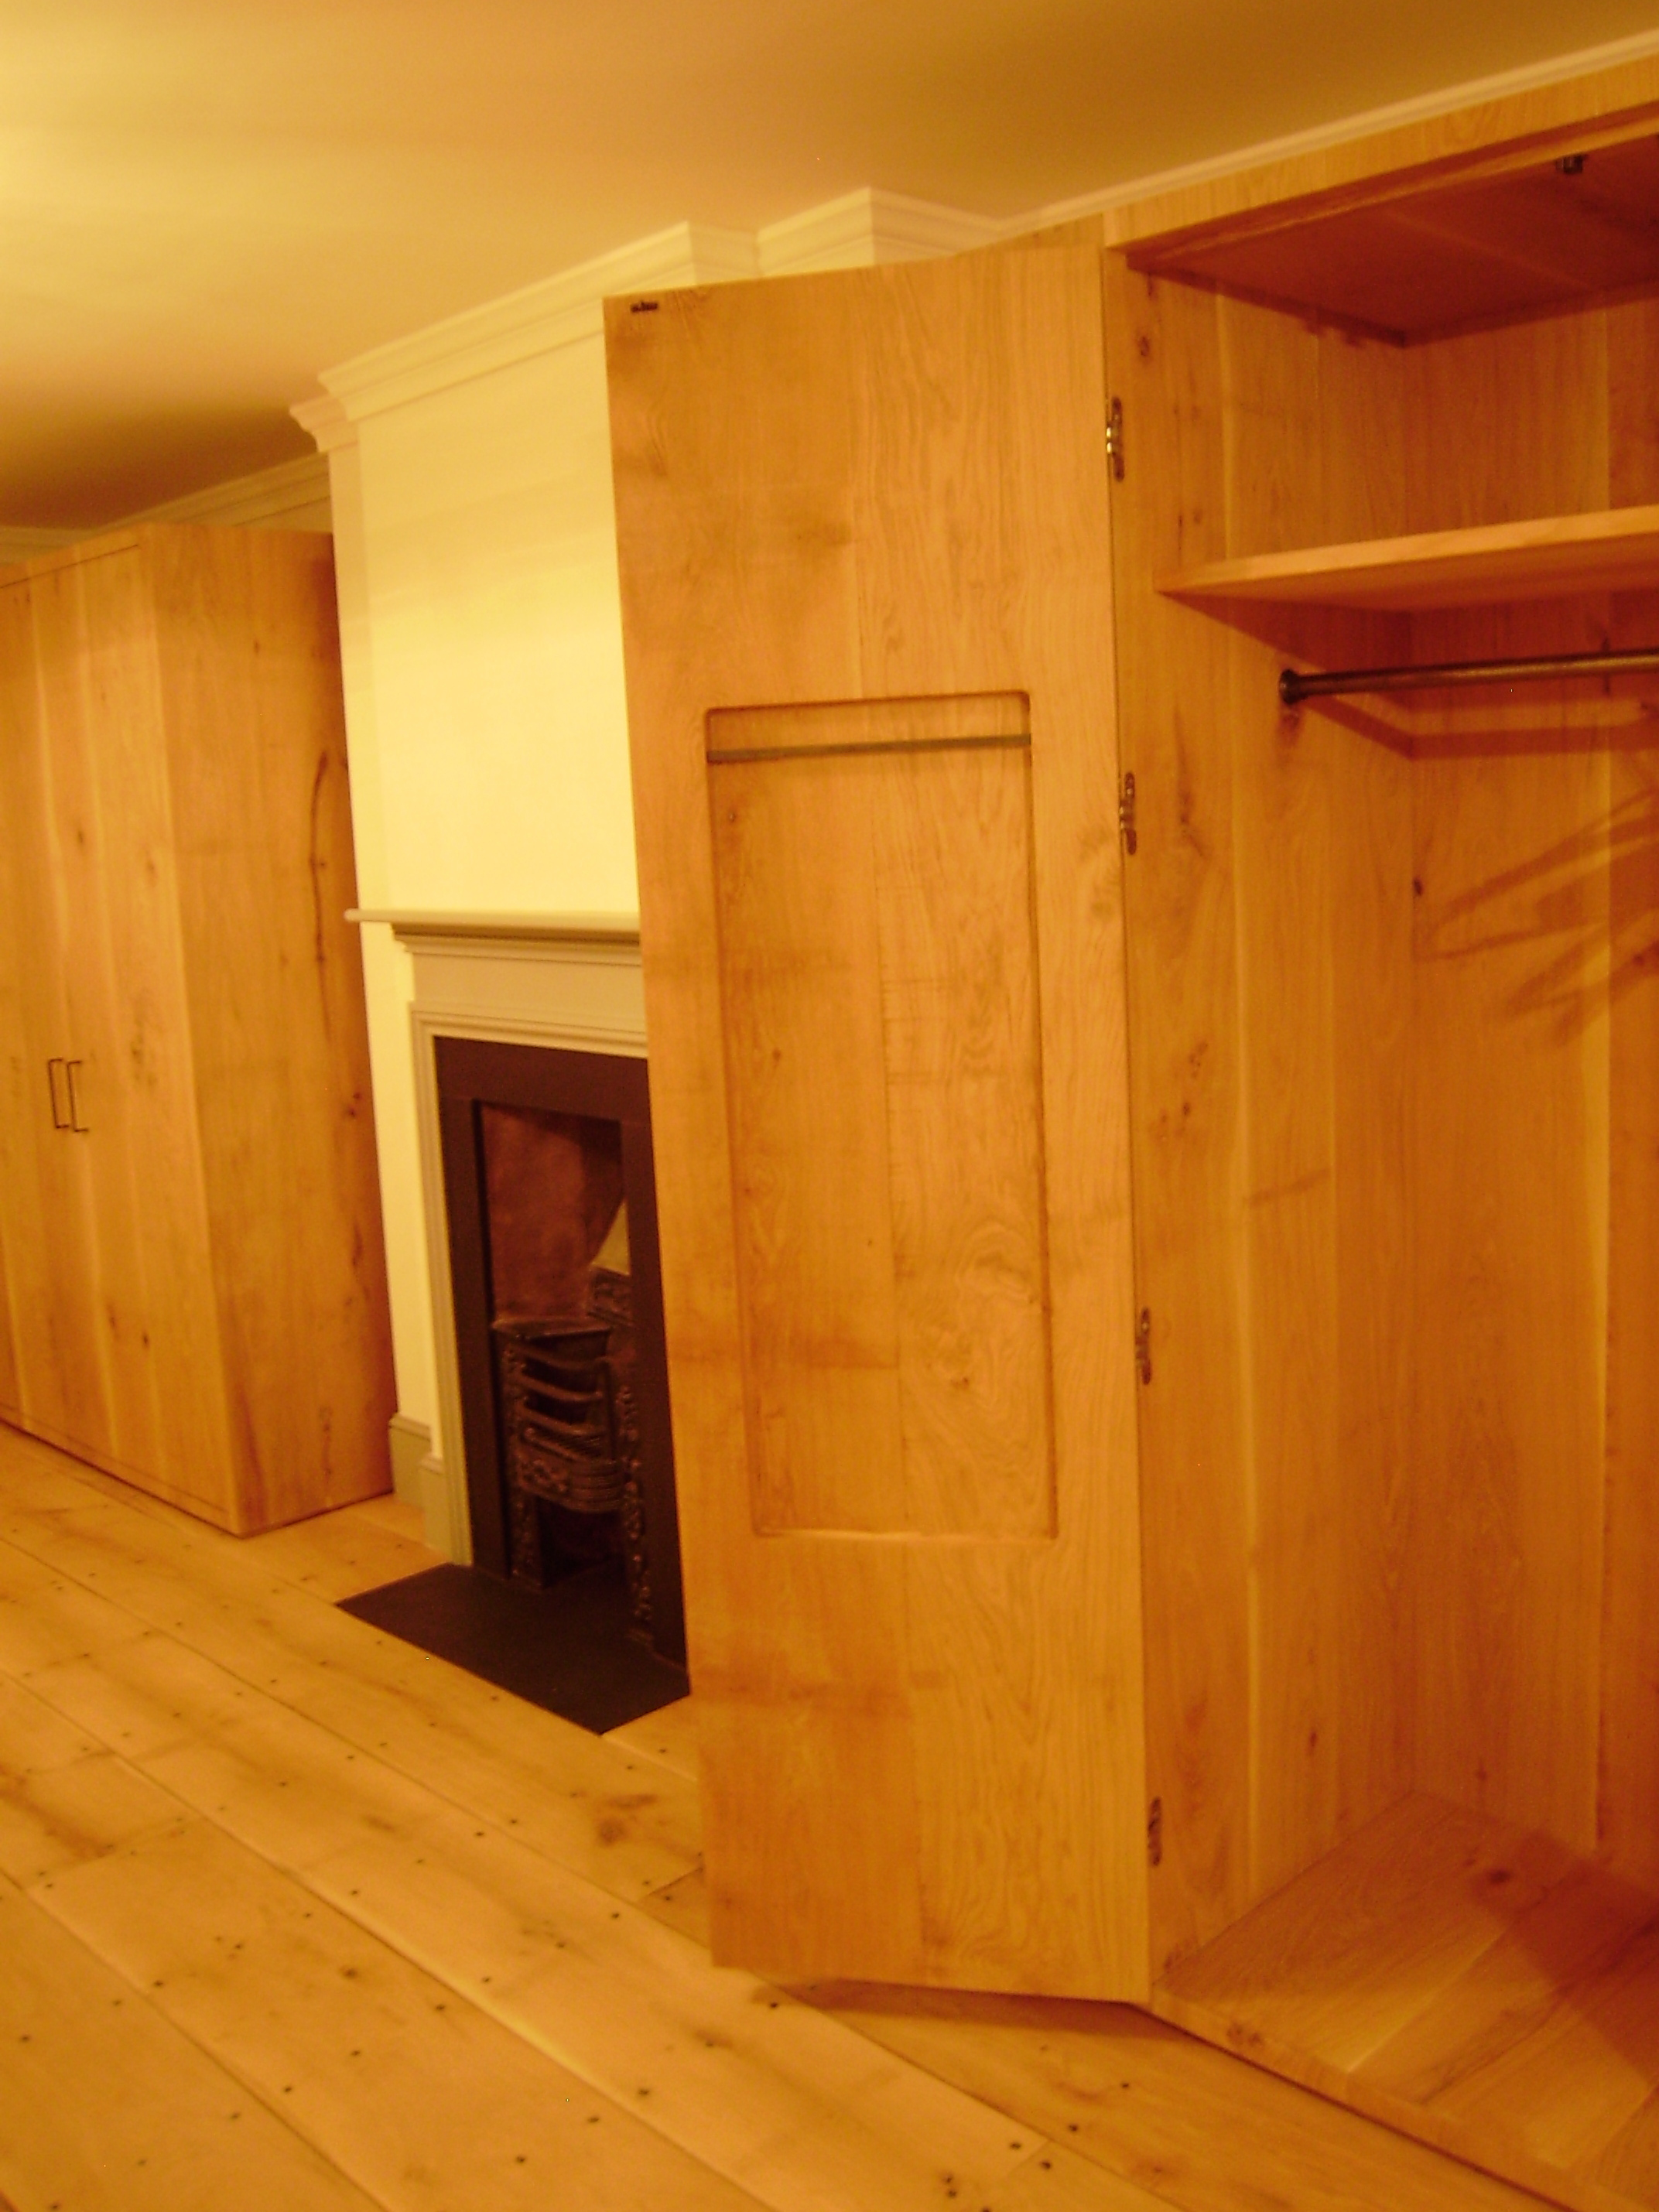 Free Standing - These free standing wardrobes are made with the same oak boards that were used for the flooring. Soss hinges and minimal ironmongery finish them perfectly.